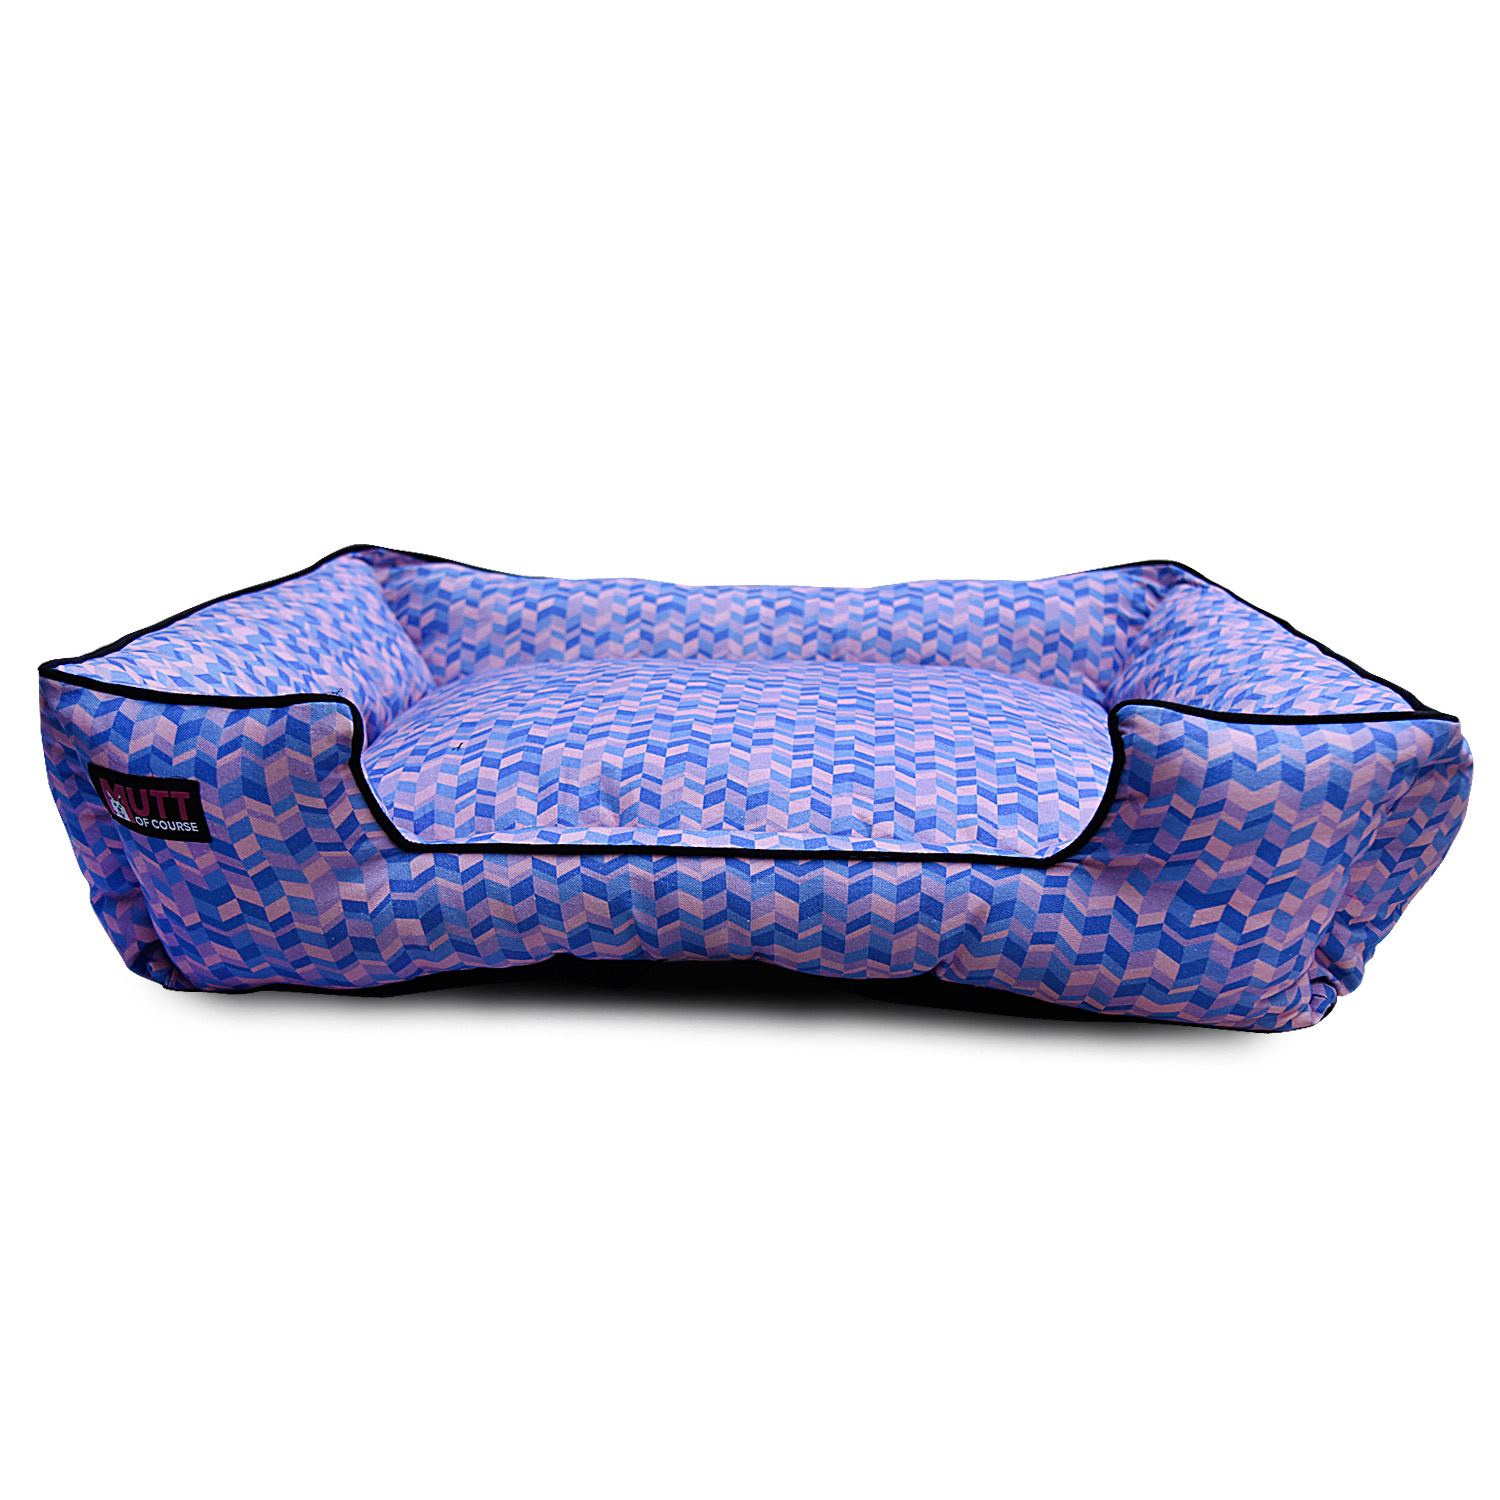 Mutt Of Course Geometrical Light Lounger Bed - Xlarge